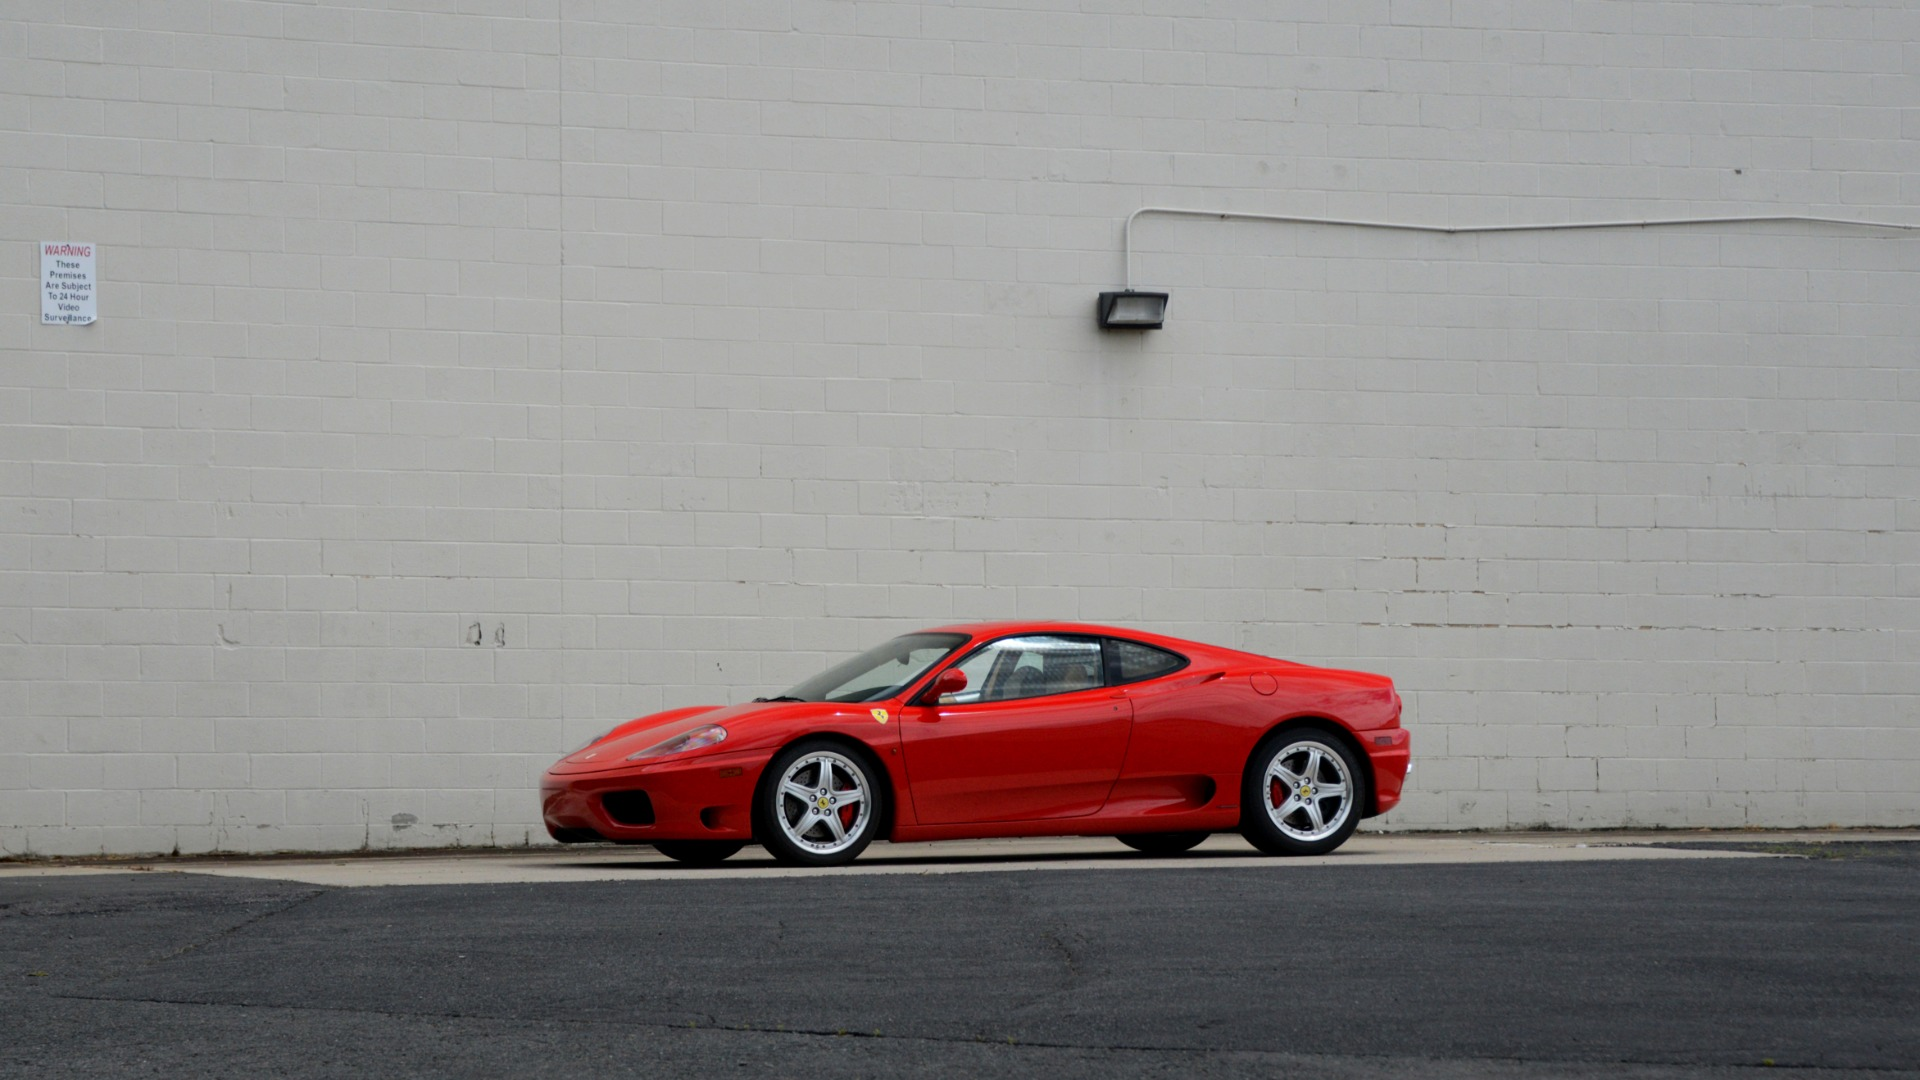 Used 2004 Ferrari 360 MODENA COUPE / GATED 6-SPD MANUAL / SUNROOF / LOW MILES for sale Sold at Formula Imports in Charlotte NC 28227 16